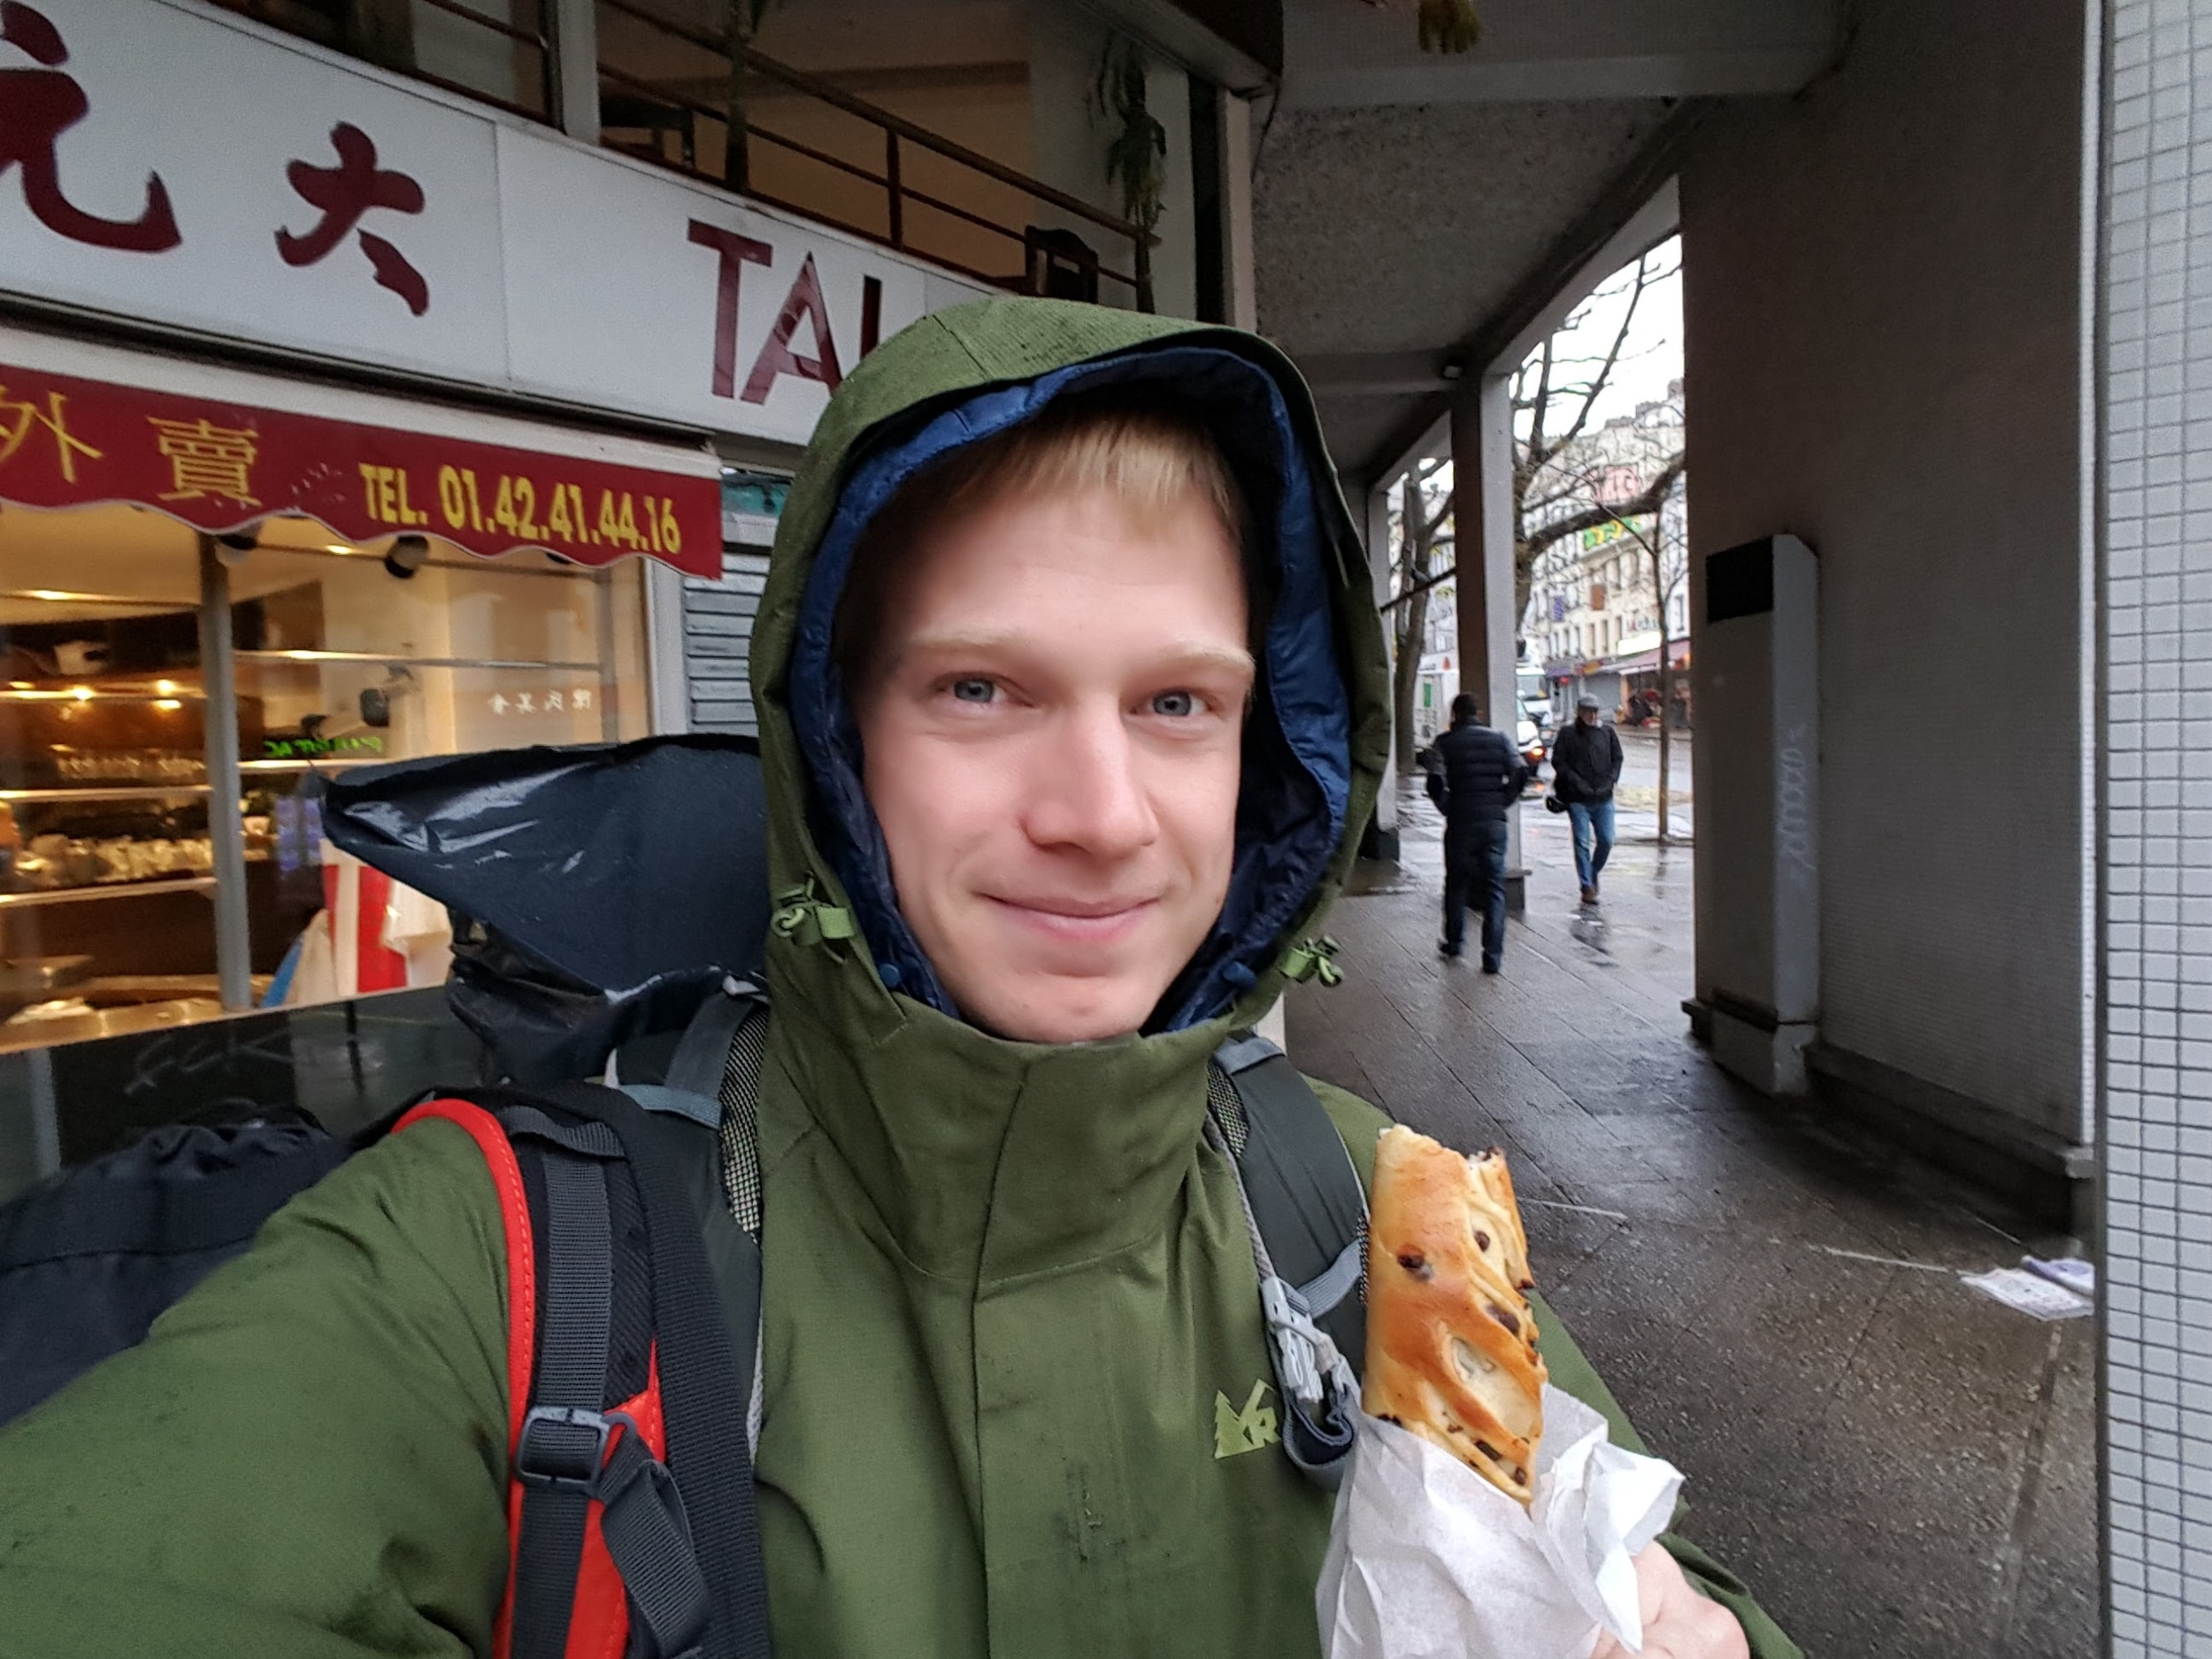 Heading to the train from Paris to Berlin. Needless to say, I was excited. Also, chocolate chip baguettes are pretty amazing.